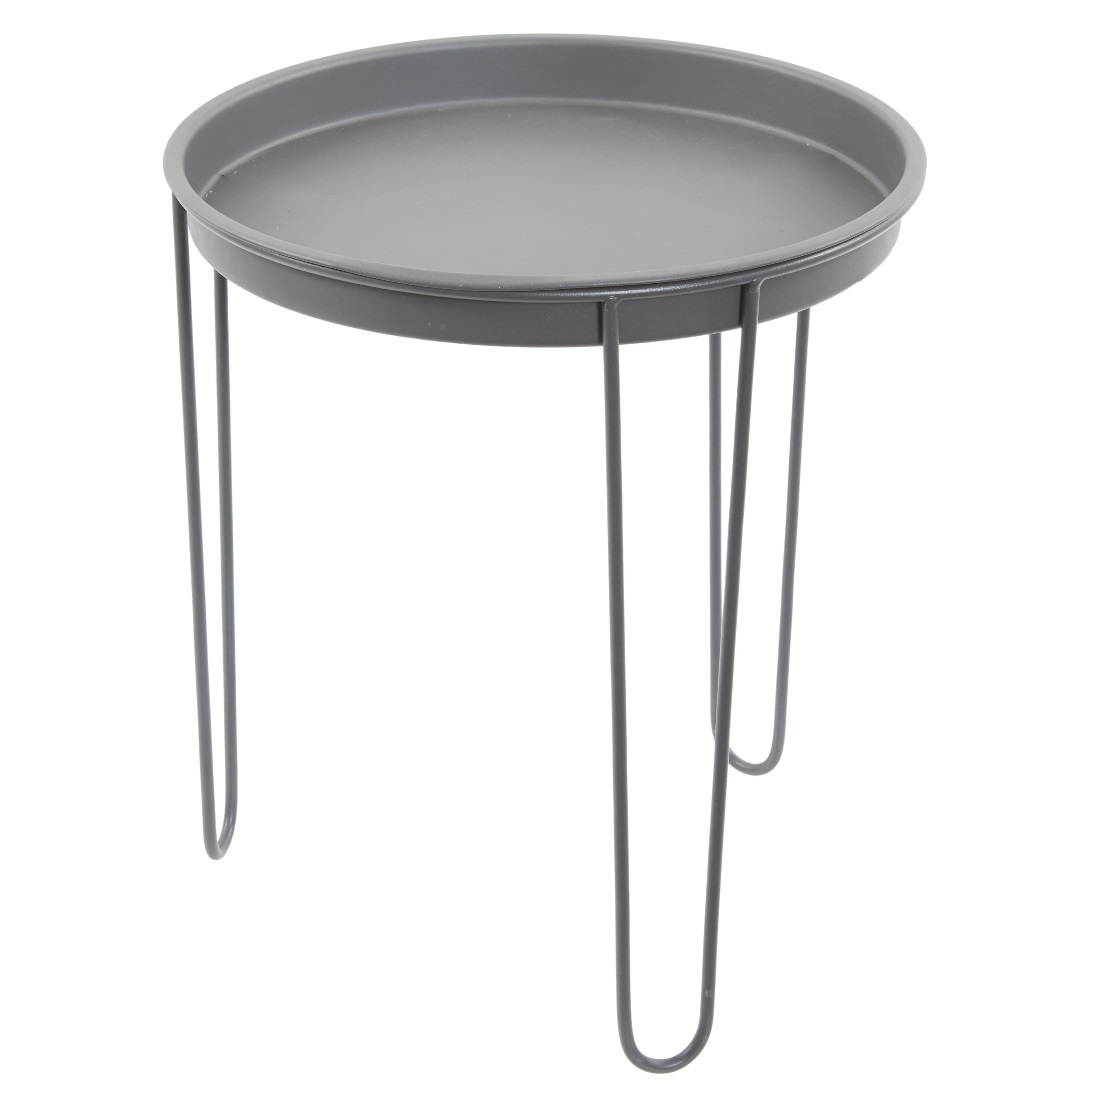 Large Grey Metal Round Tray Side Table By Tobs 39 X 45 Cm